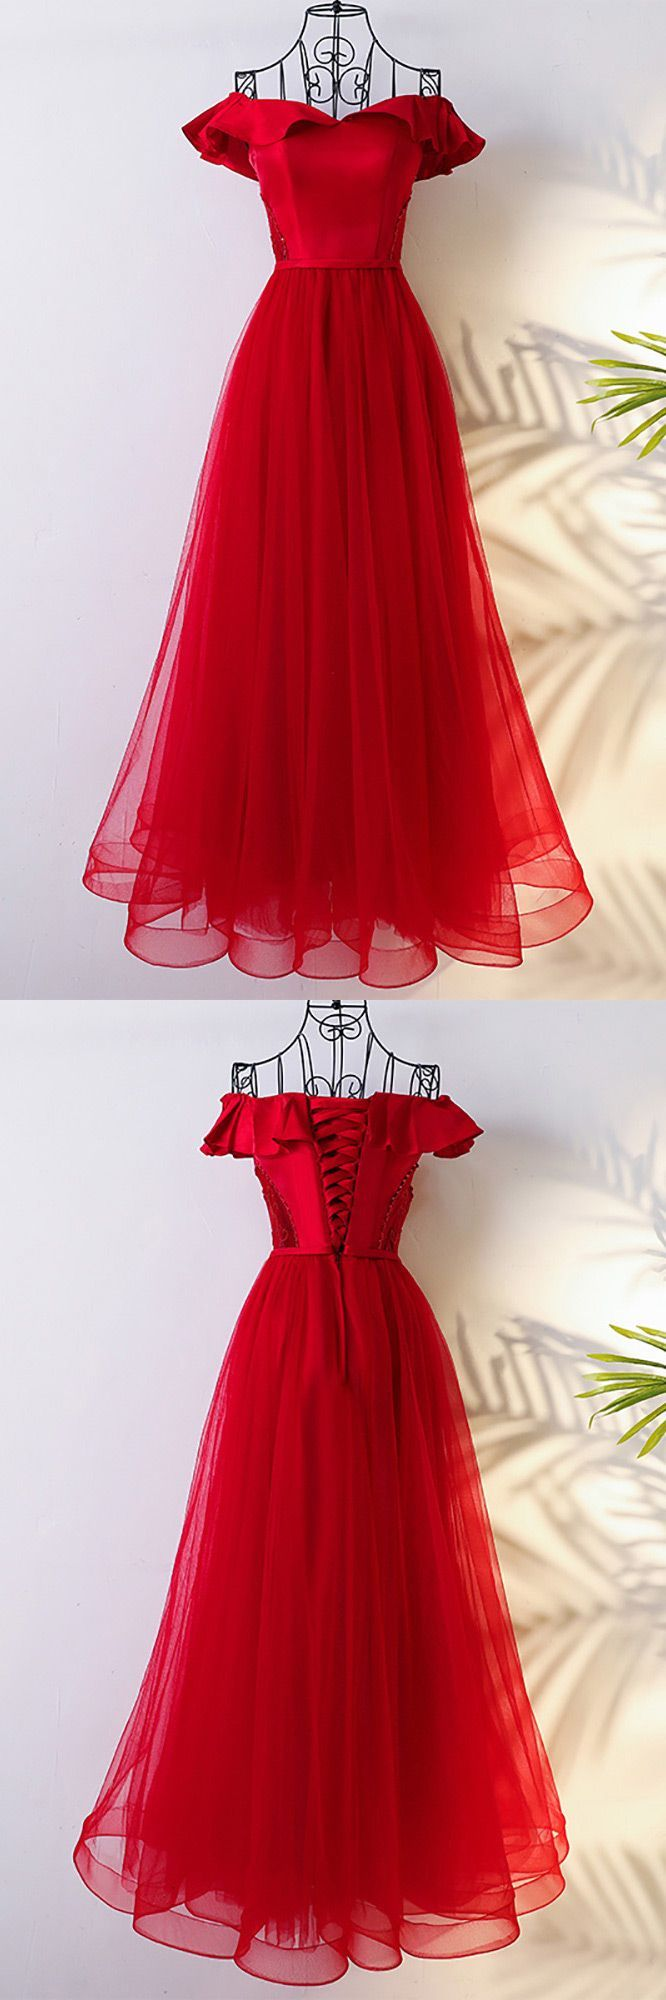 Lovely red off the shoulder bridal party formal dress long